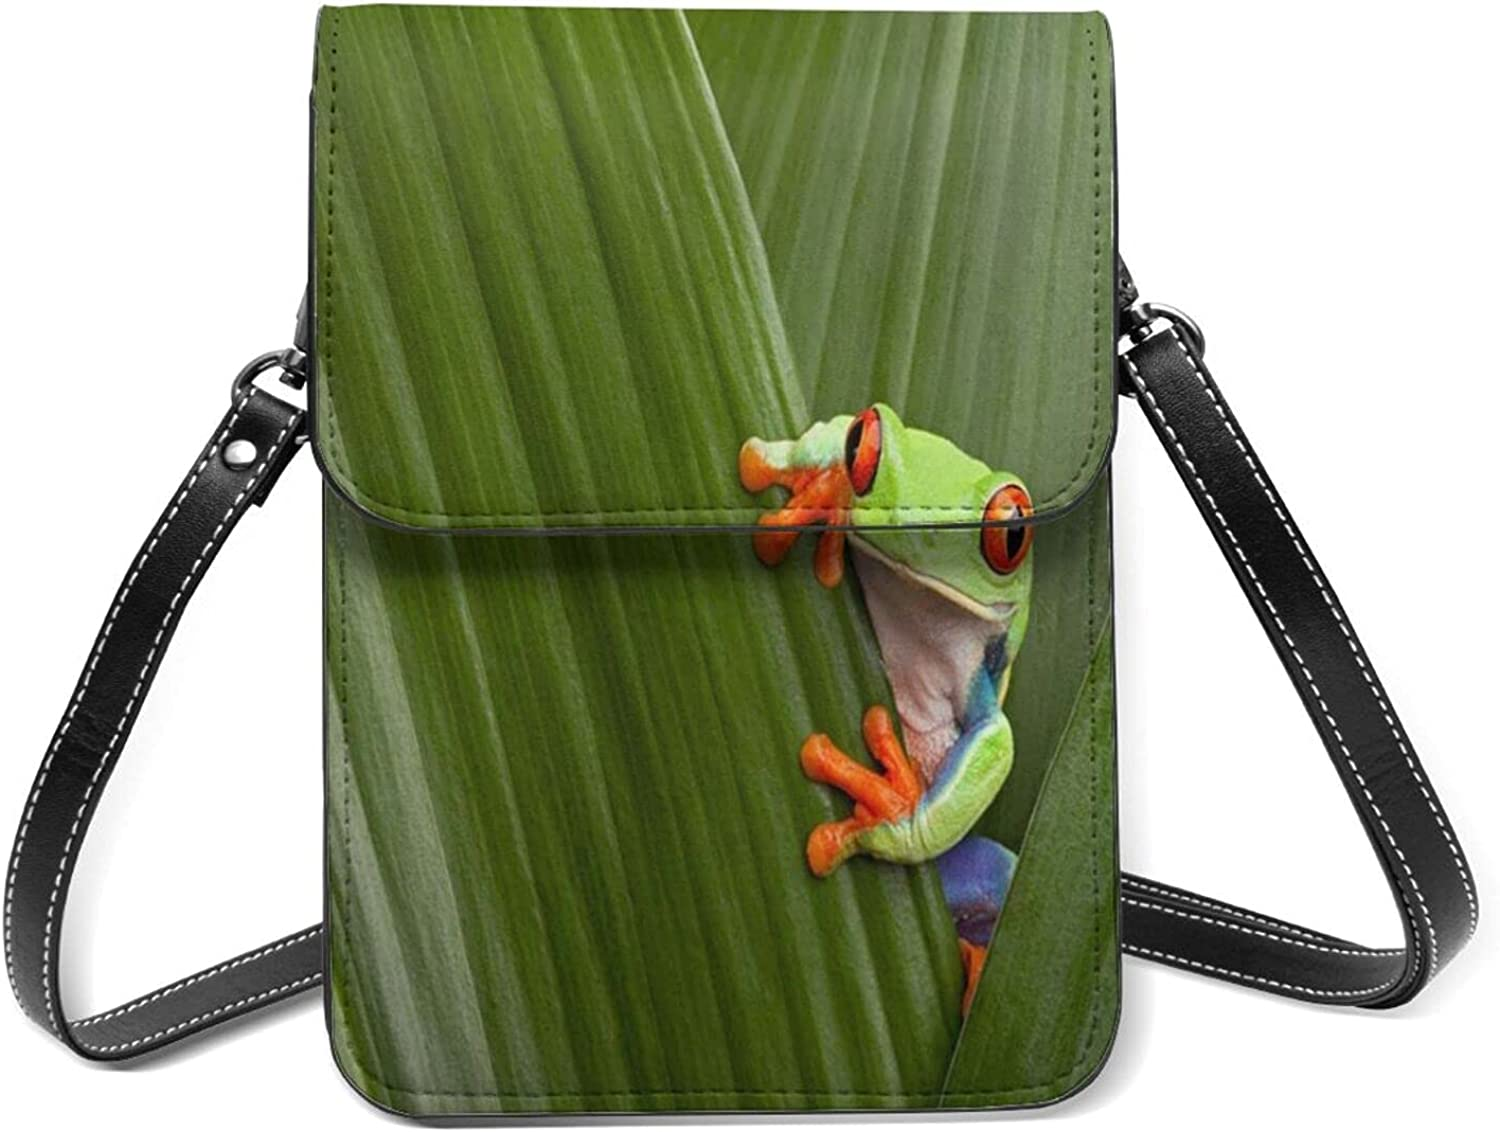 Red Eyed Tree Frog Animal Small SEAL limited product Purse Flip Cell Light Challenge the lowest price of Japan ☆ Phone